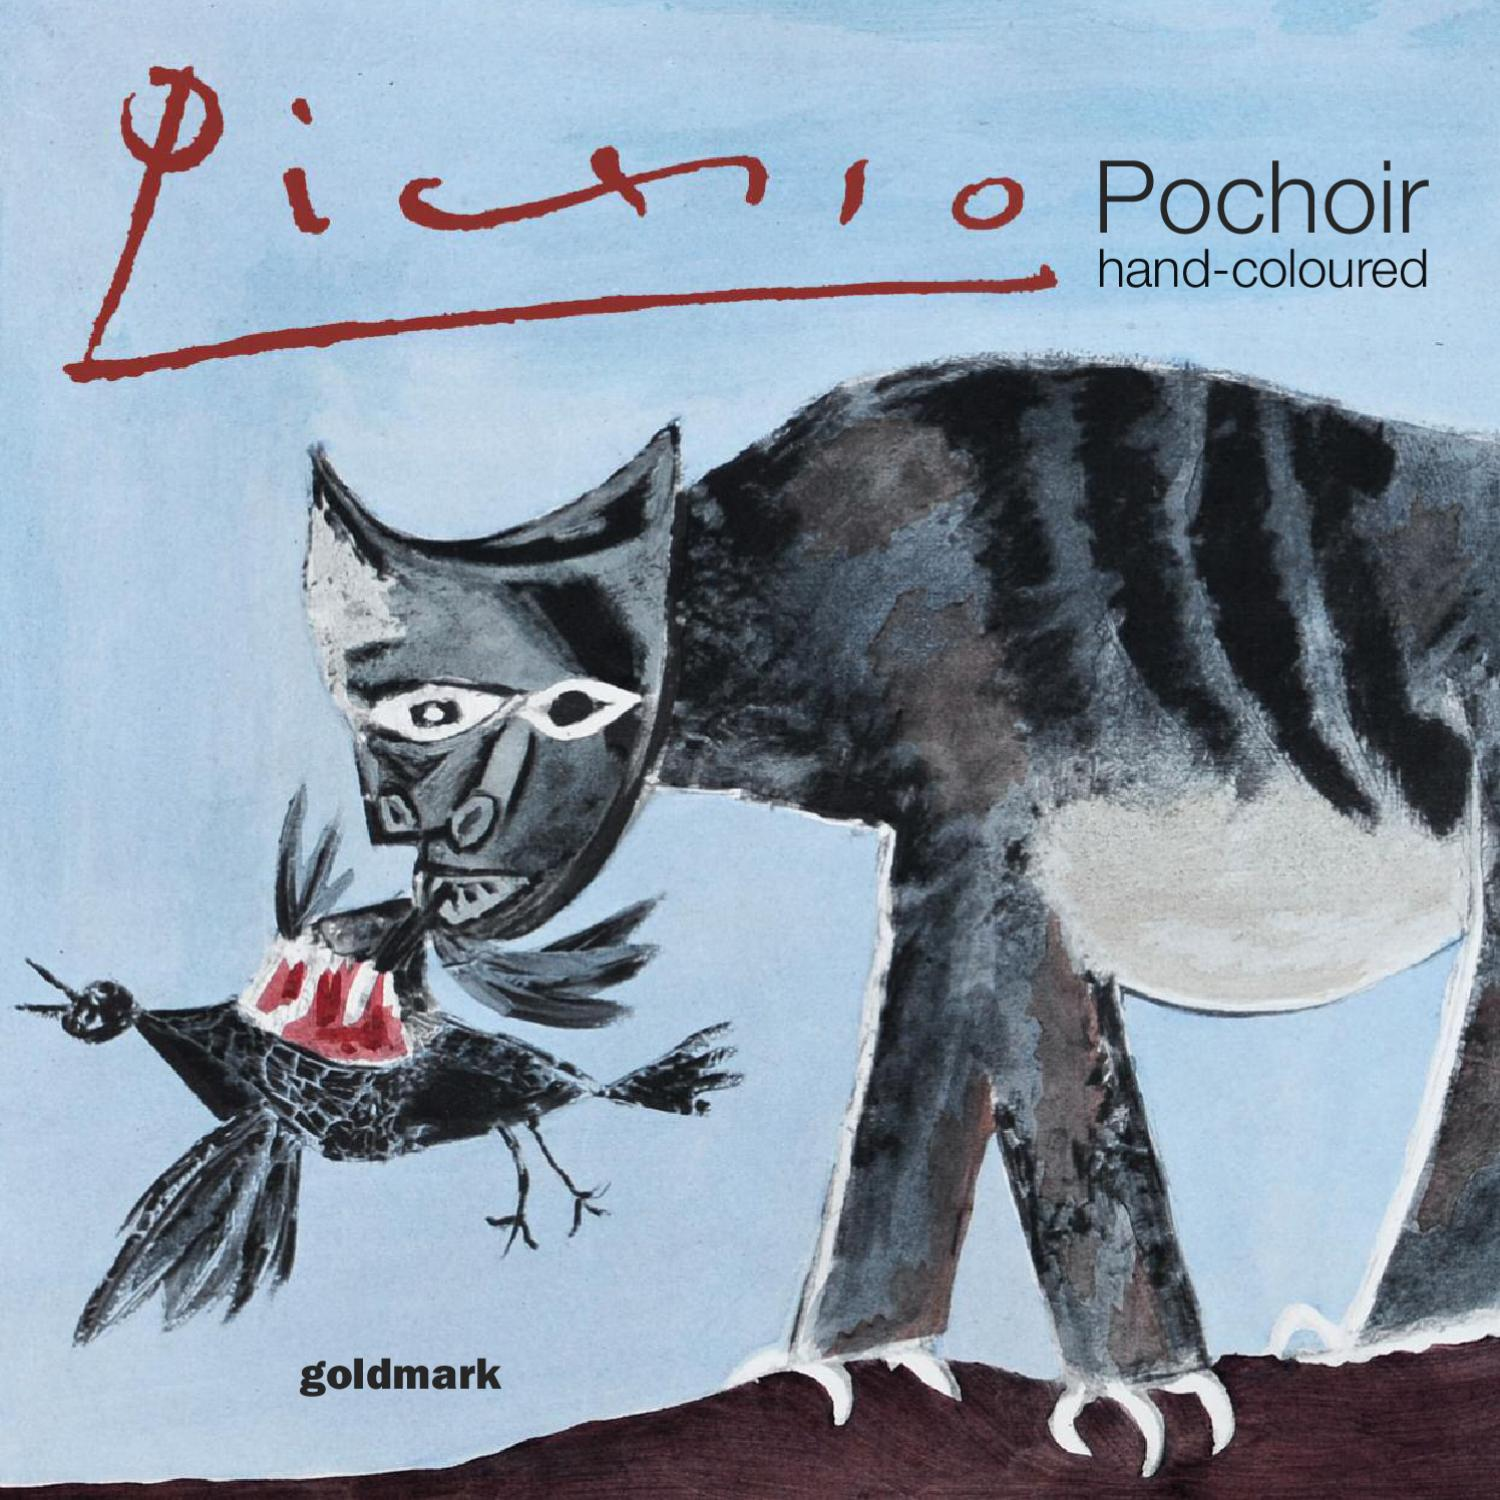 Picasso pochoir by goldmark gallery issuu for Pochoir prints for sale